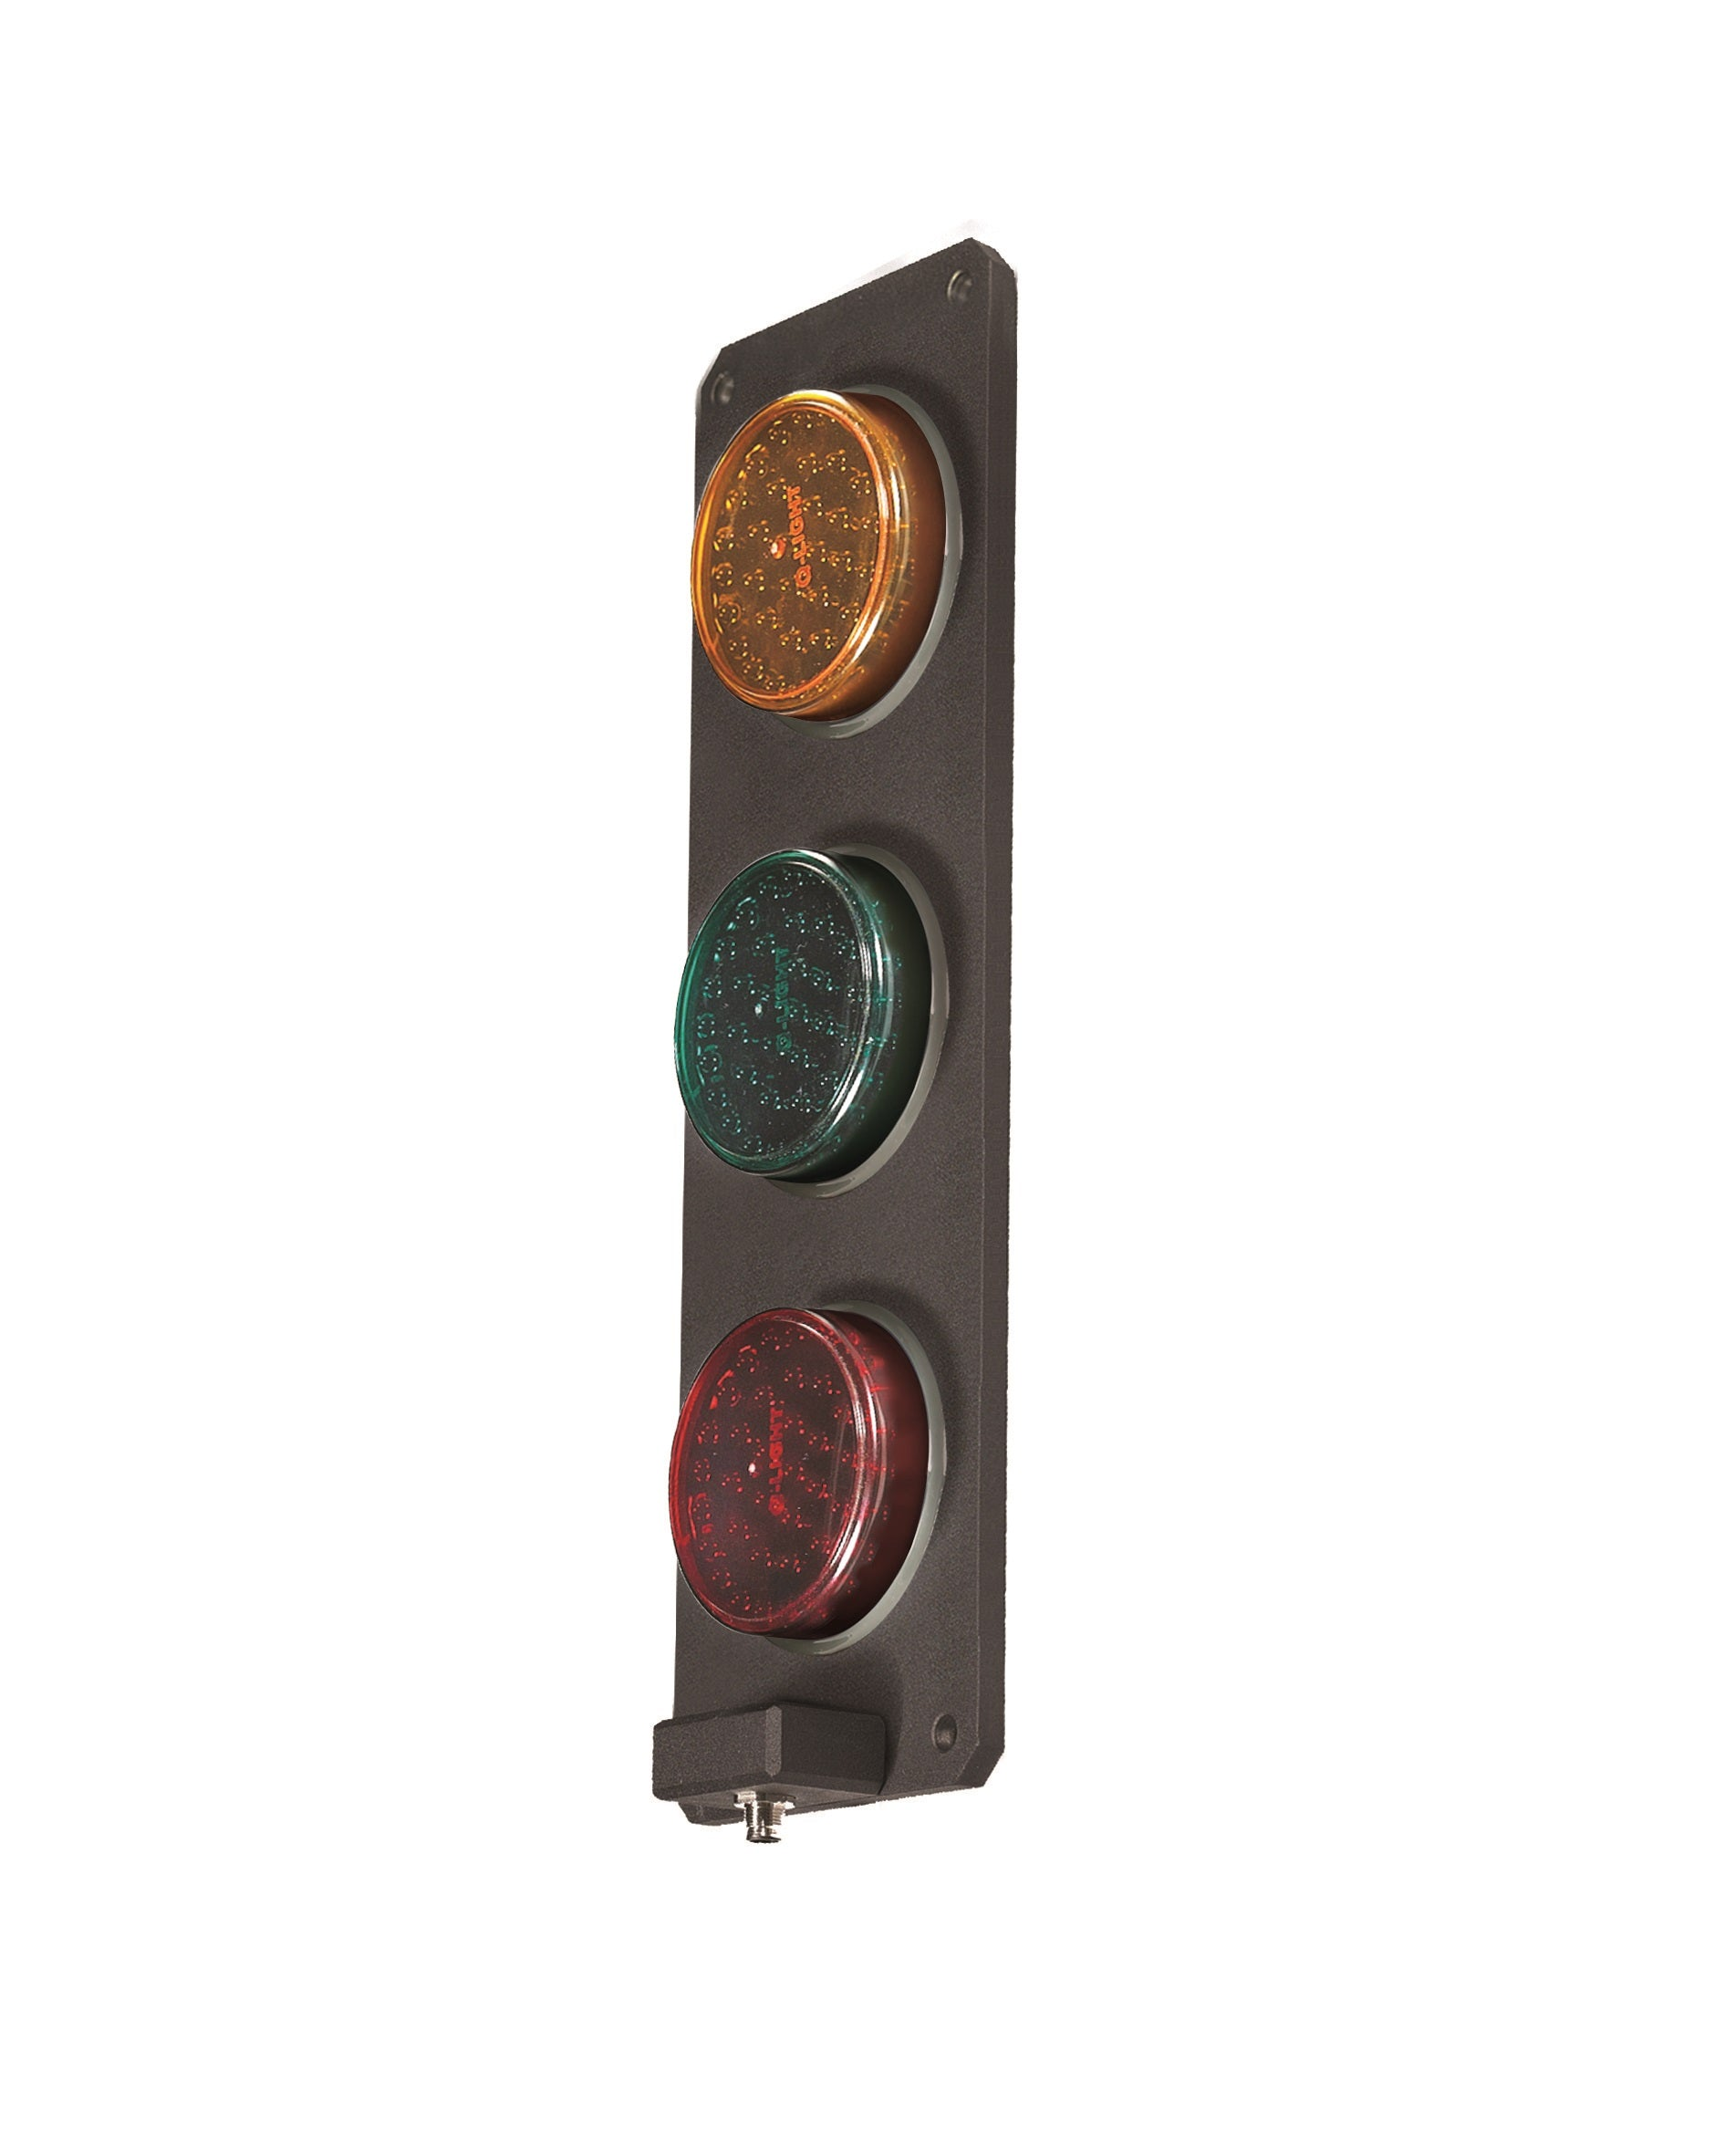 BNR Industrial Qlight SSL300M 3 Aspect 92mm Surface Mount IP68 Metal Body LED Traffic Light - BNR Industrial